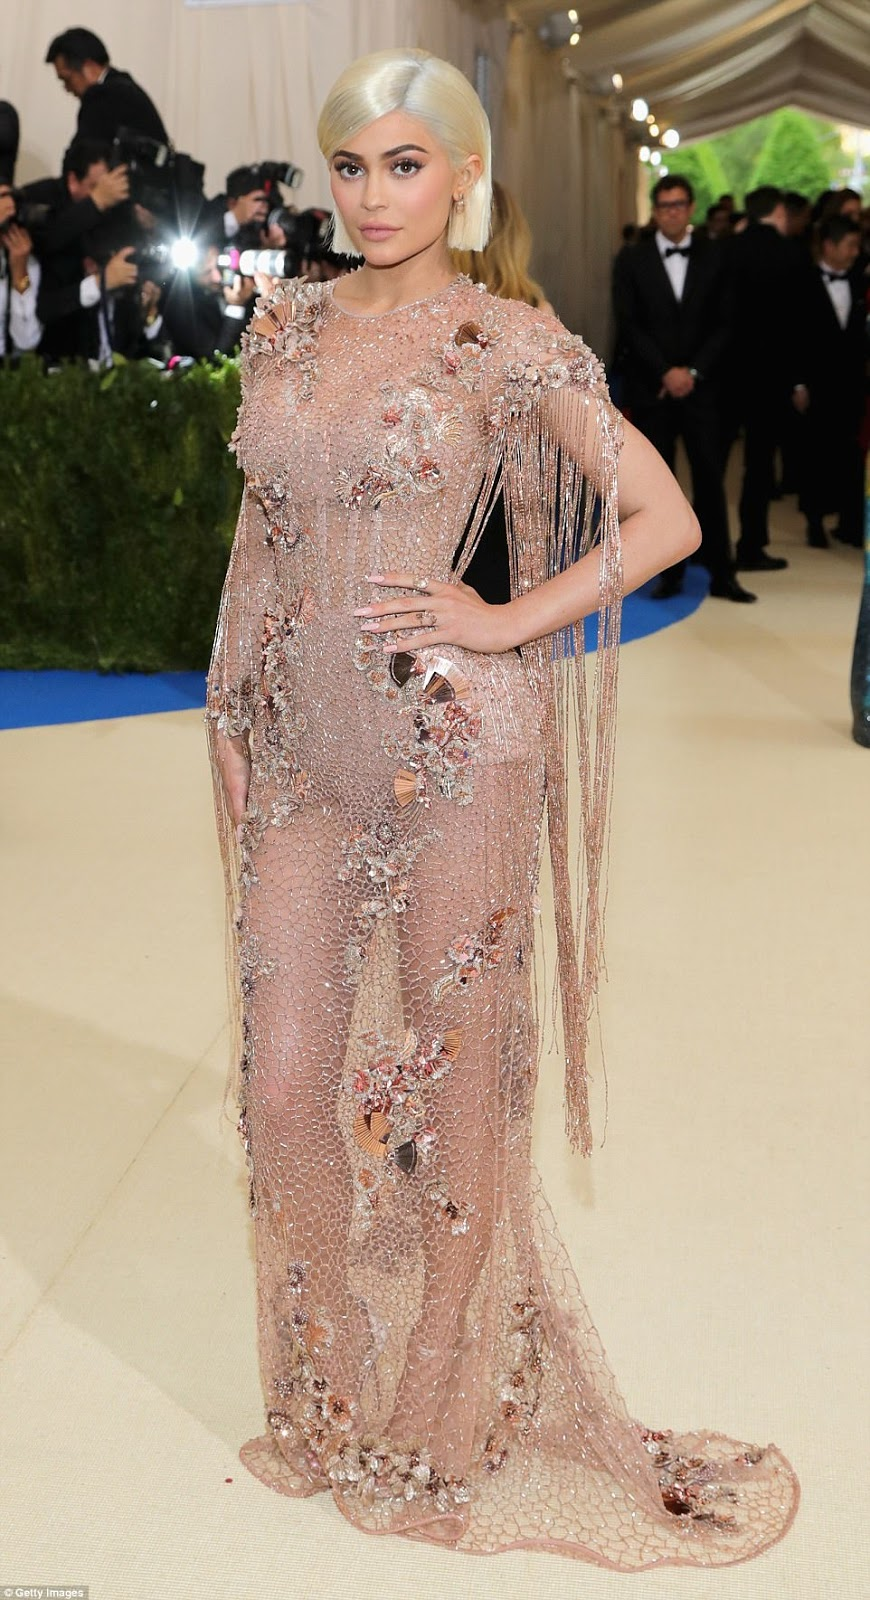 Kylie Jenner wears sheer embellished Versace to the 2017 Met Gala